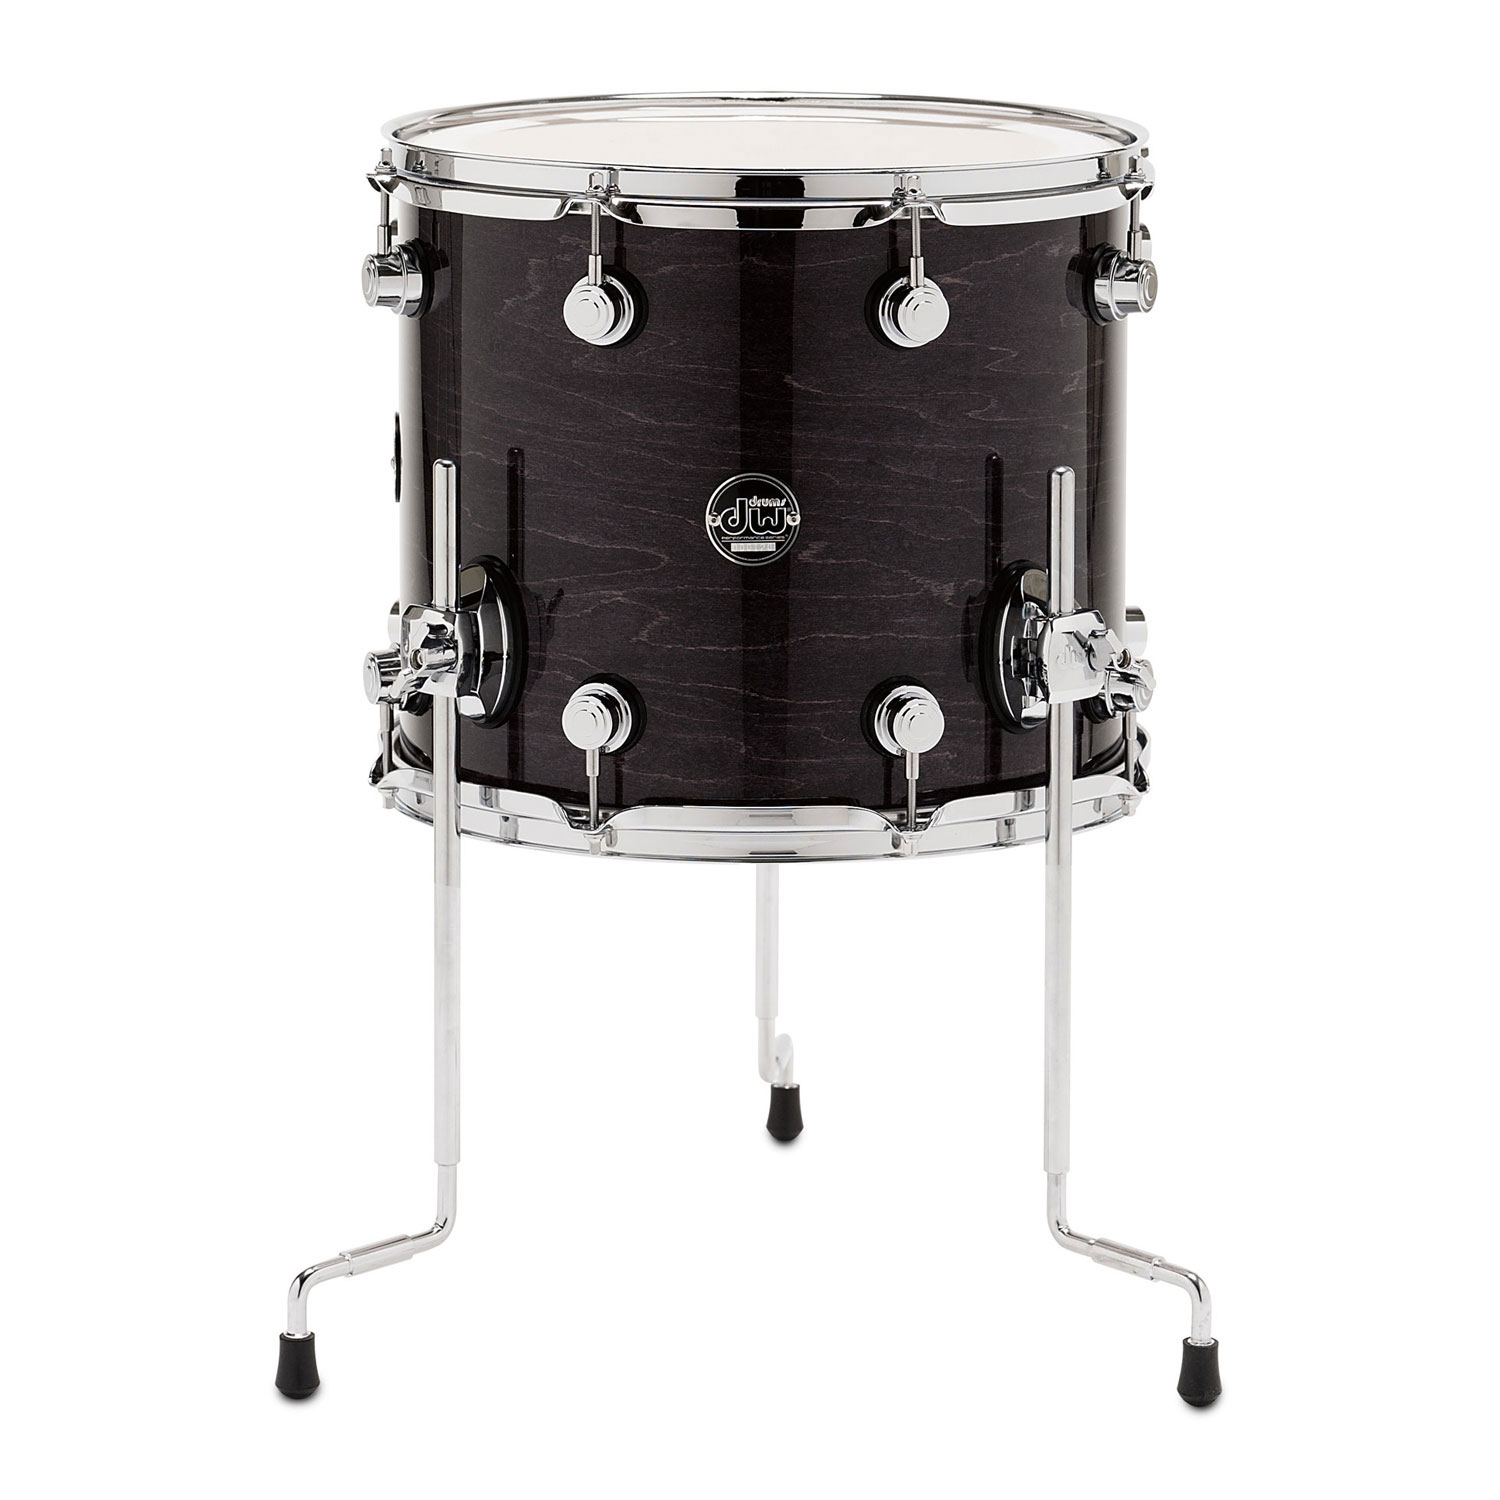 "DW 16"" (Deep) x 18"" (Diameter) Performance Series Floor Tom"